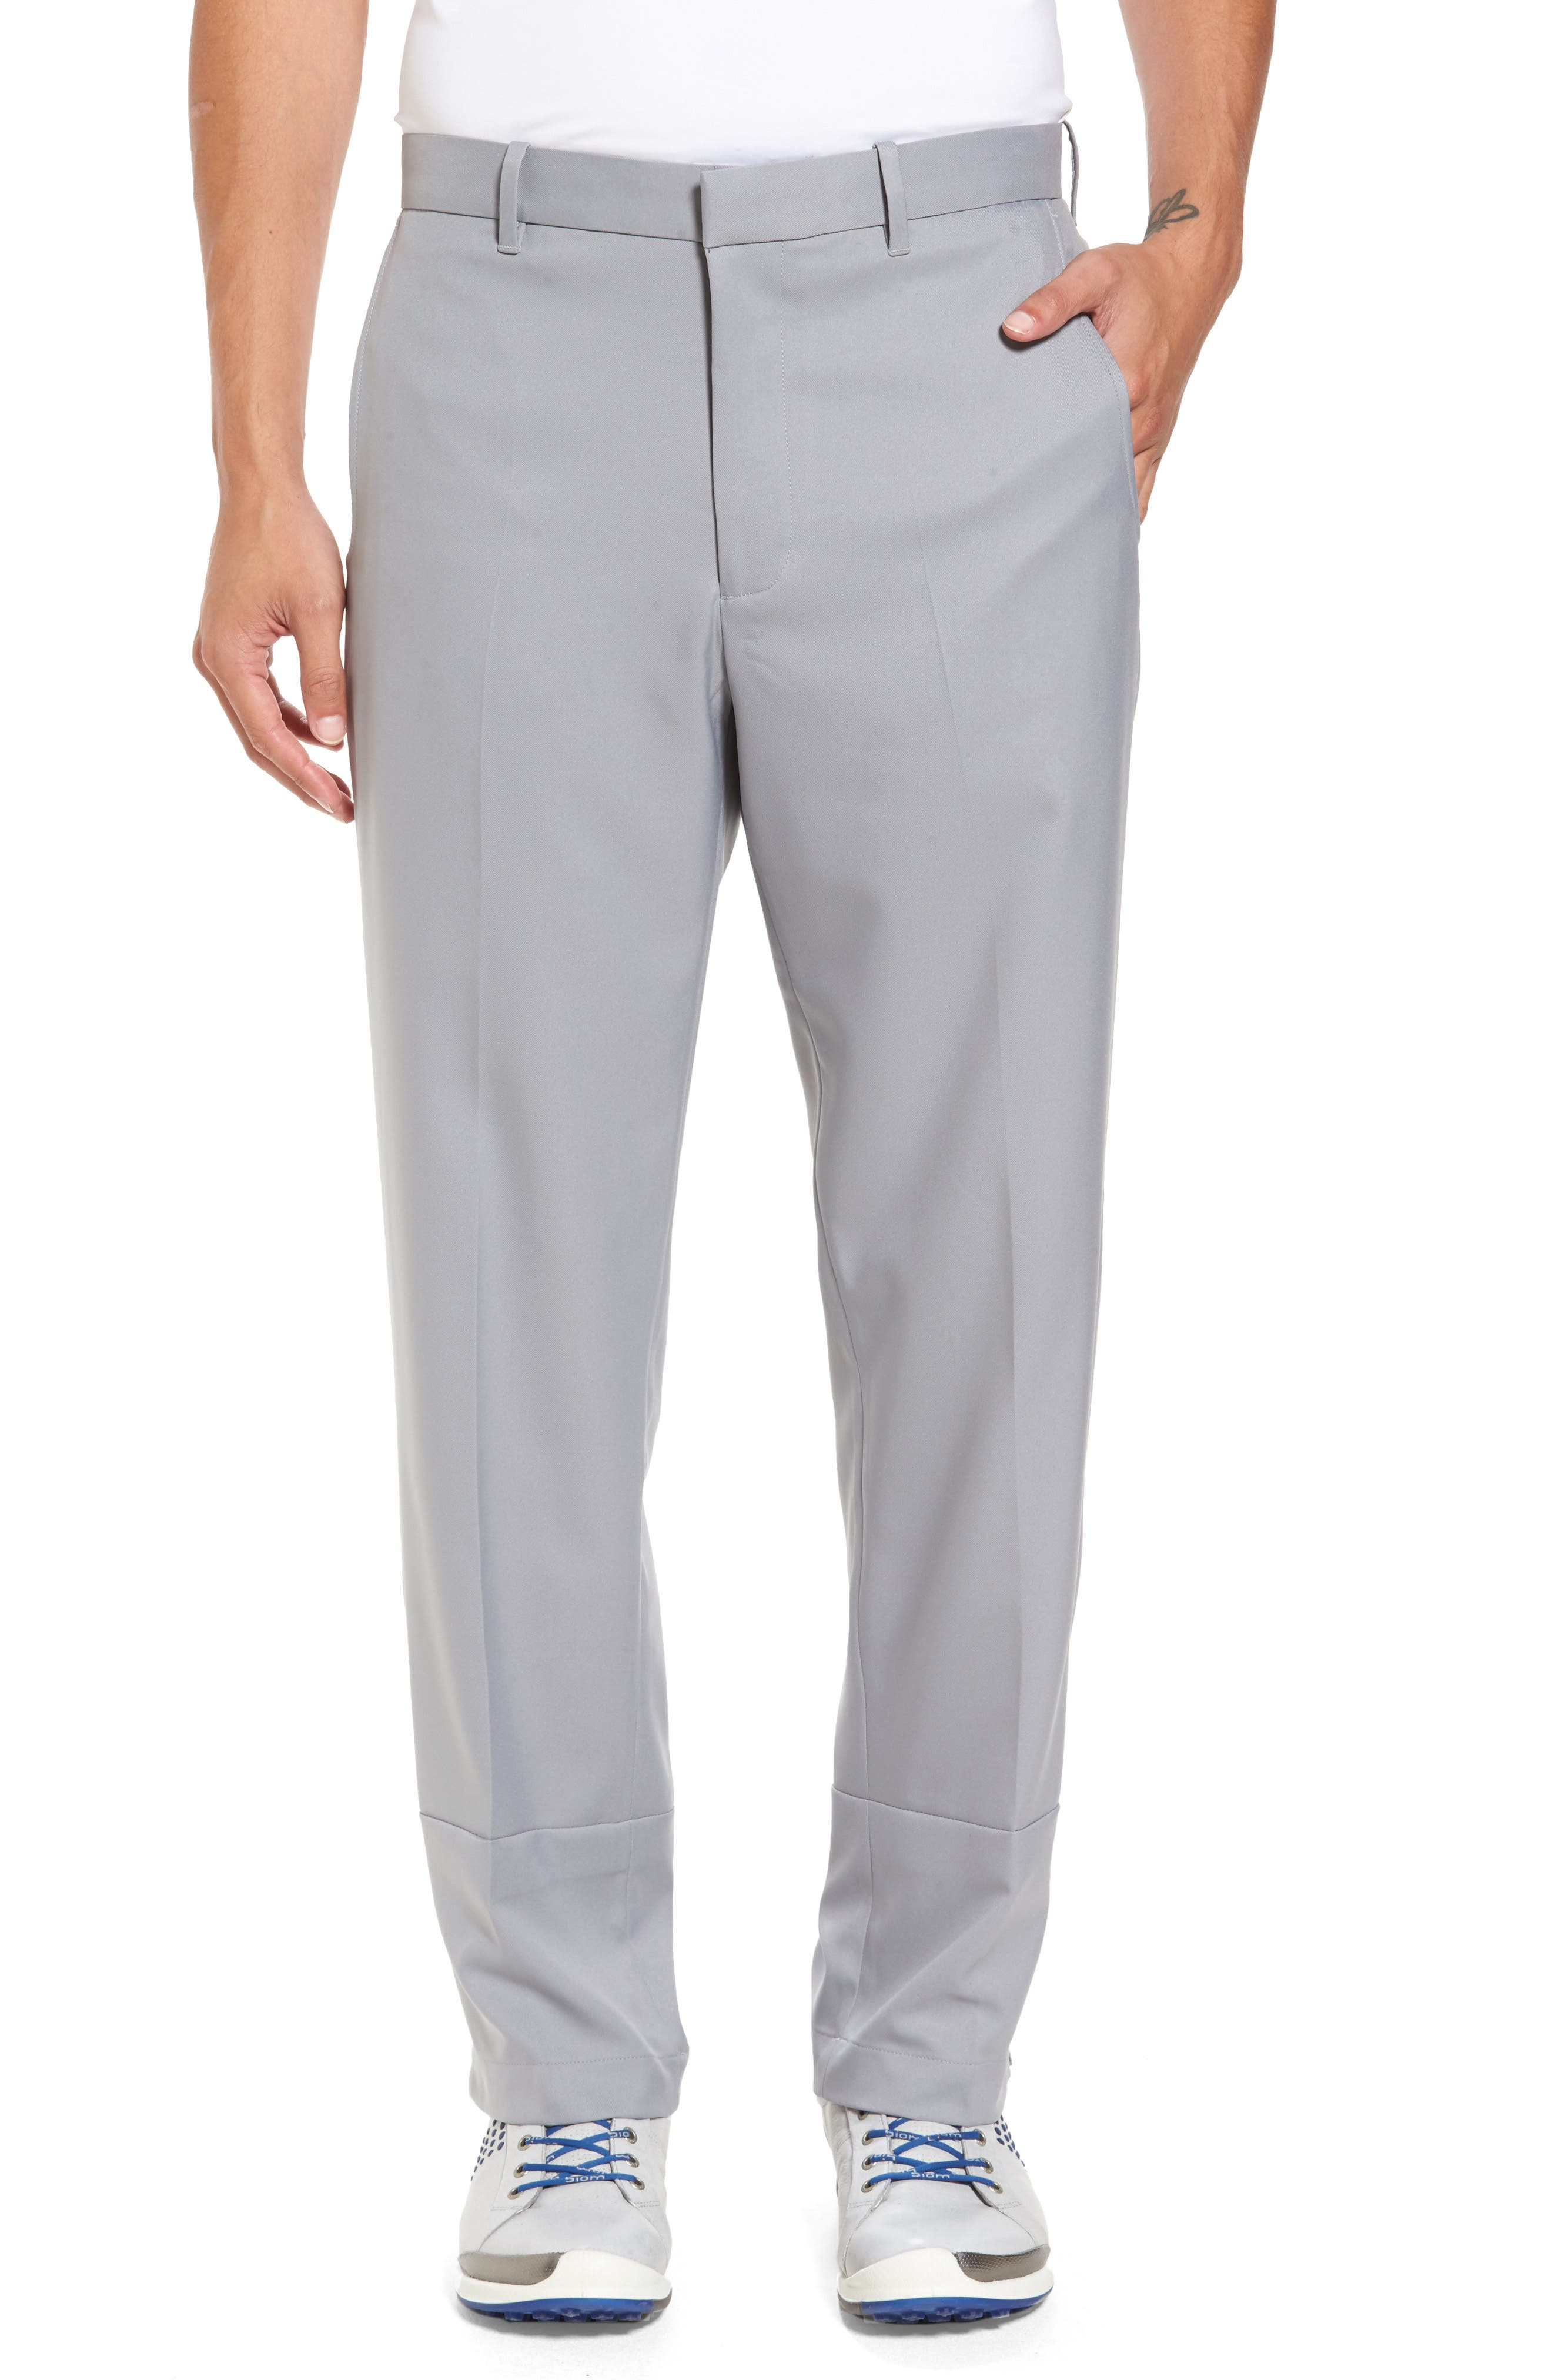 'Tech' Flat Front Wrinkle Free Golf Pants,                         Main,                         color, 052